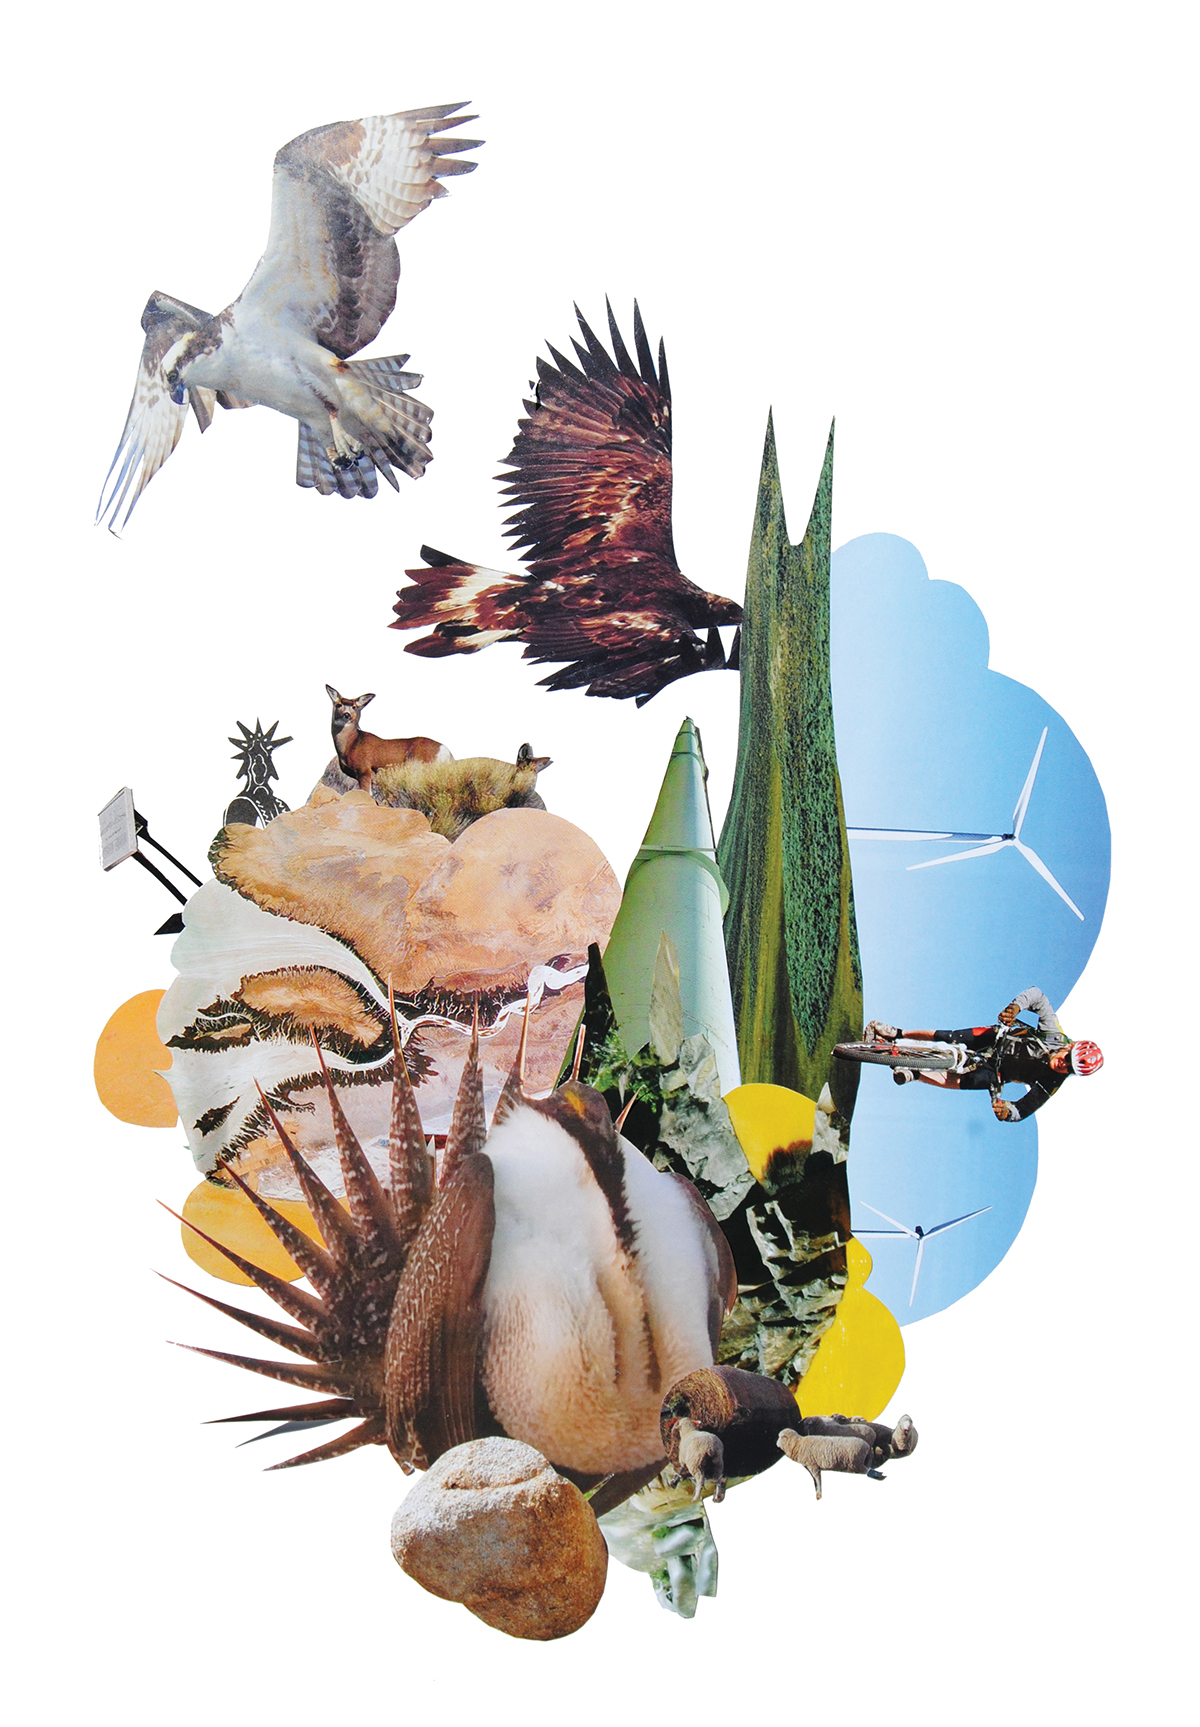 Animal collage with birds, sagegrouse, biker, windmills, and ungulates